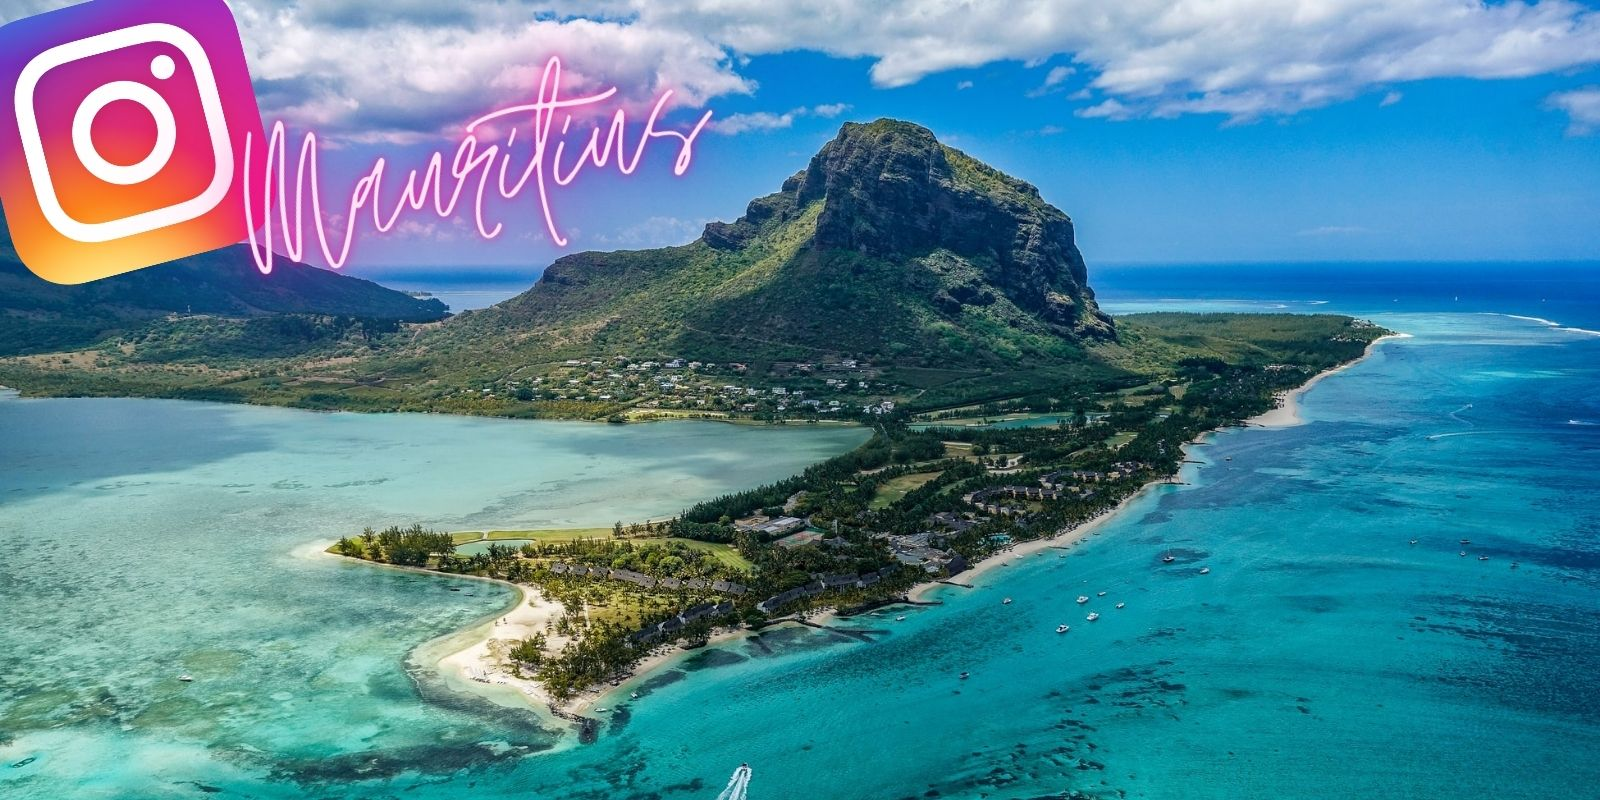 Travel blog: Escape the Lockdown With an Instagram Tour of Mauritius